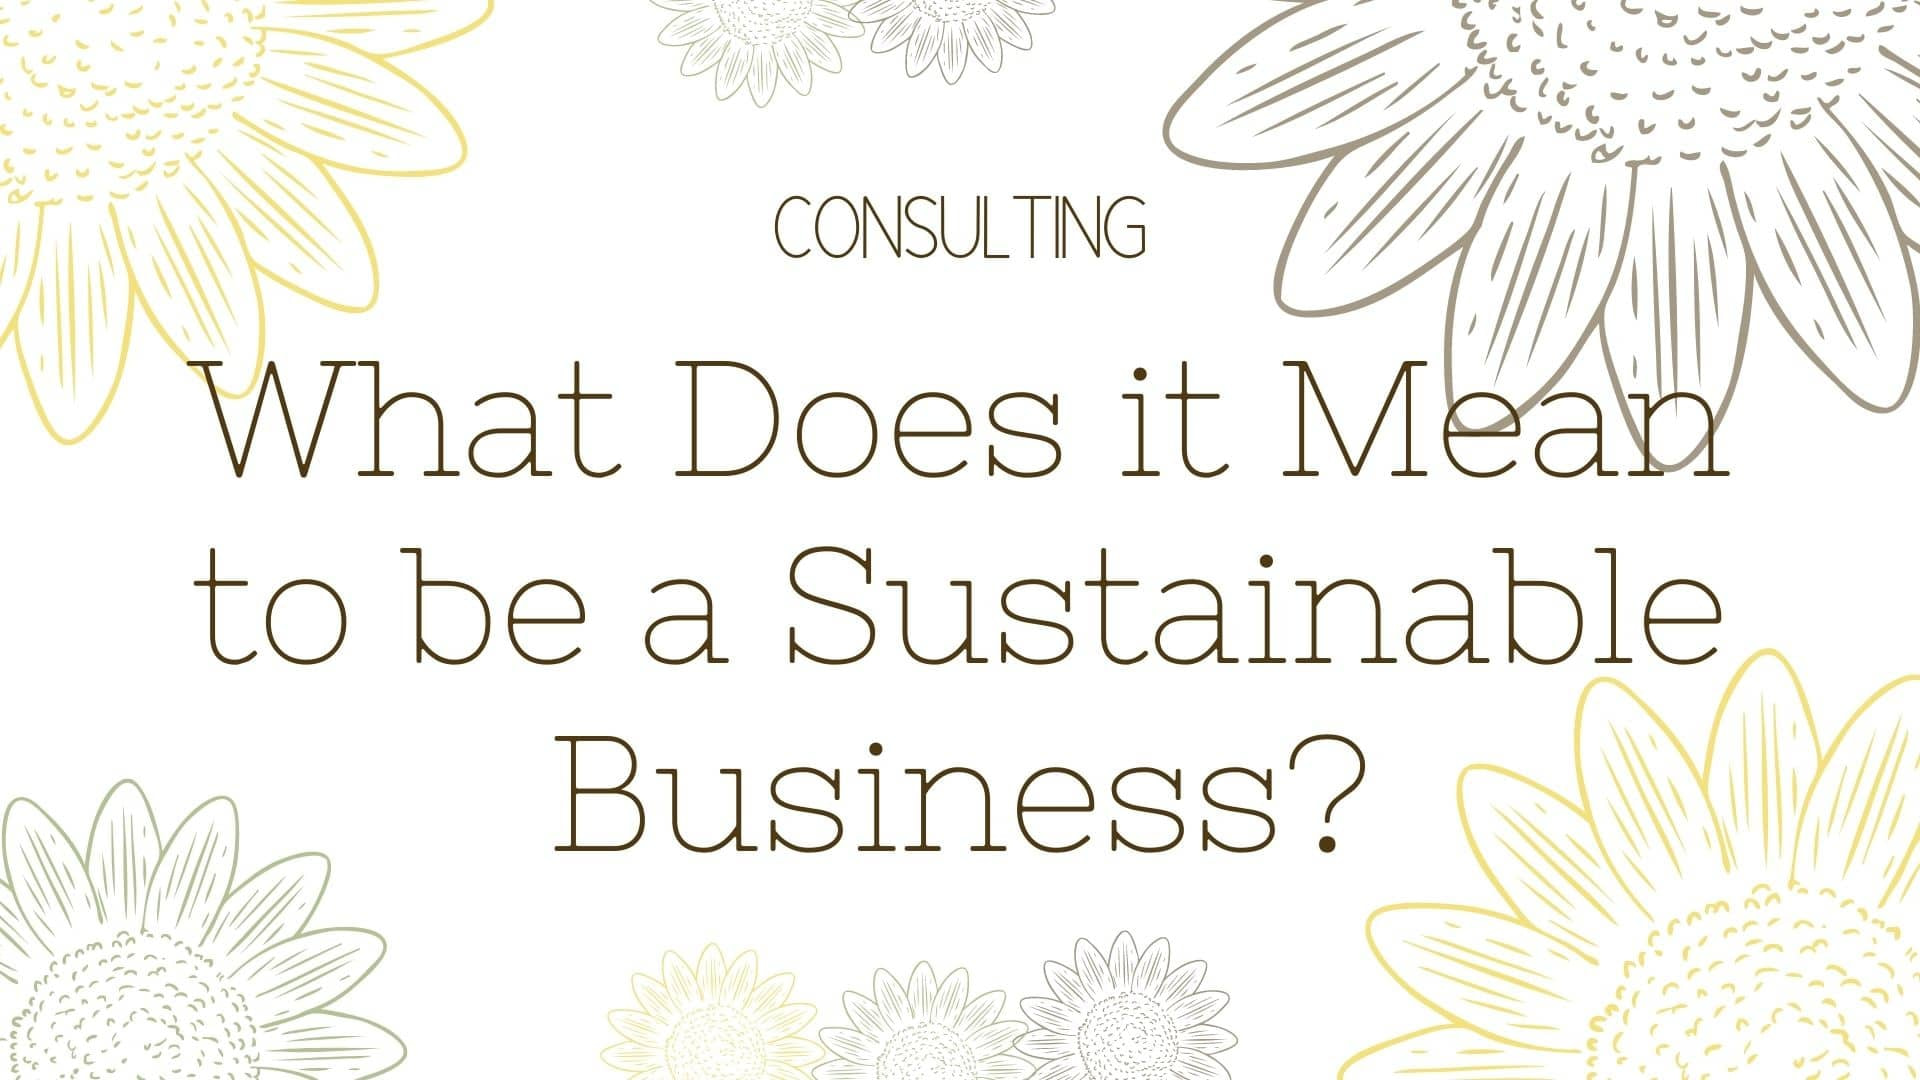 What Does it Mean to be a Sustainable Business